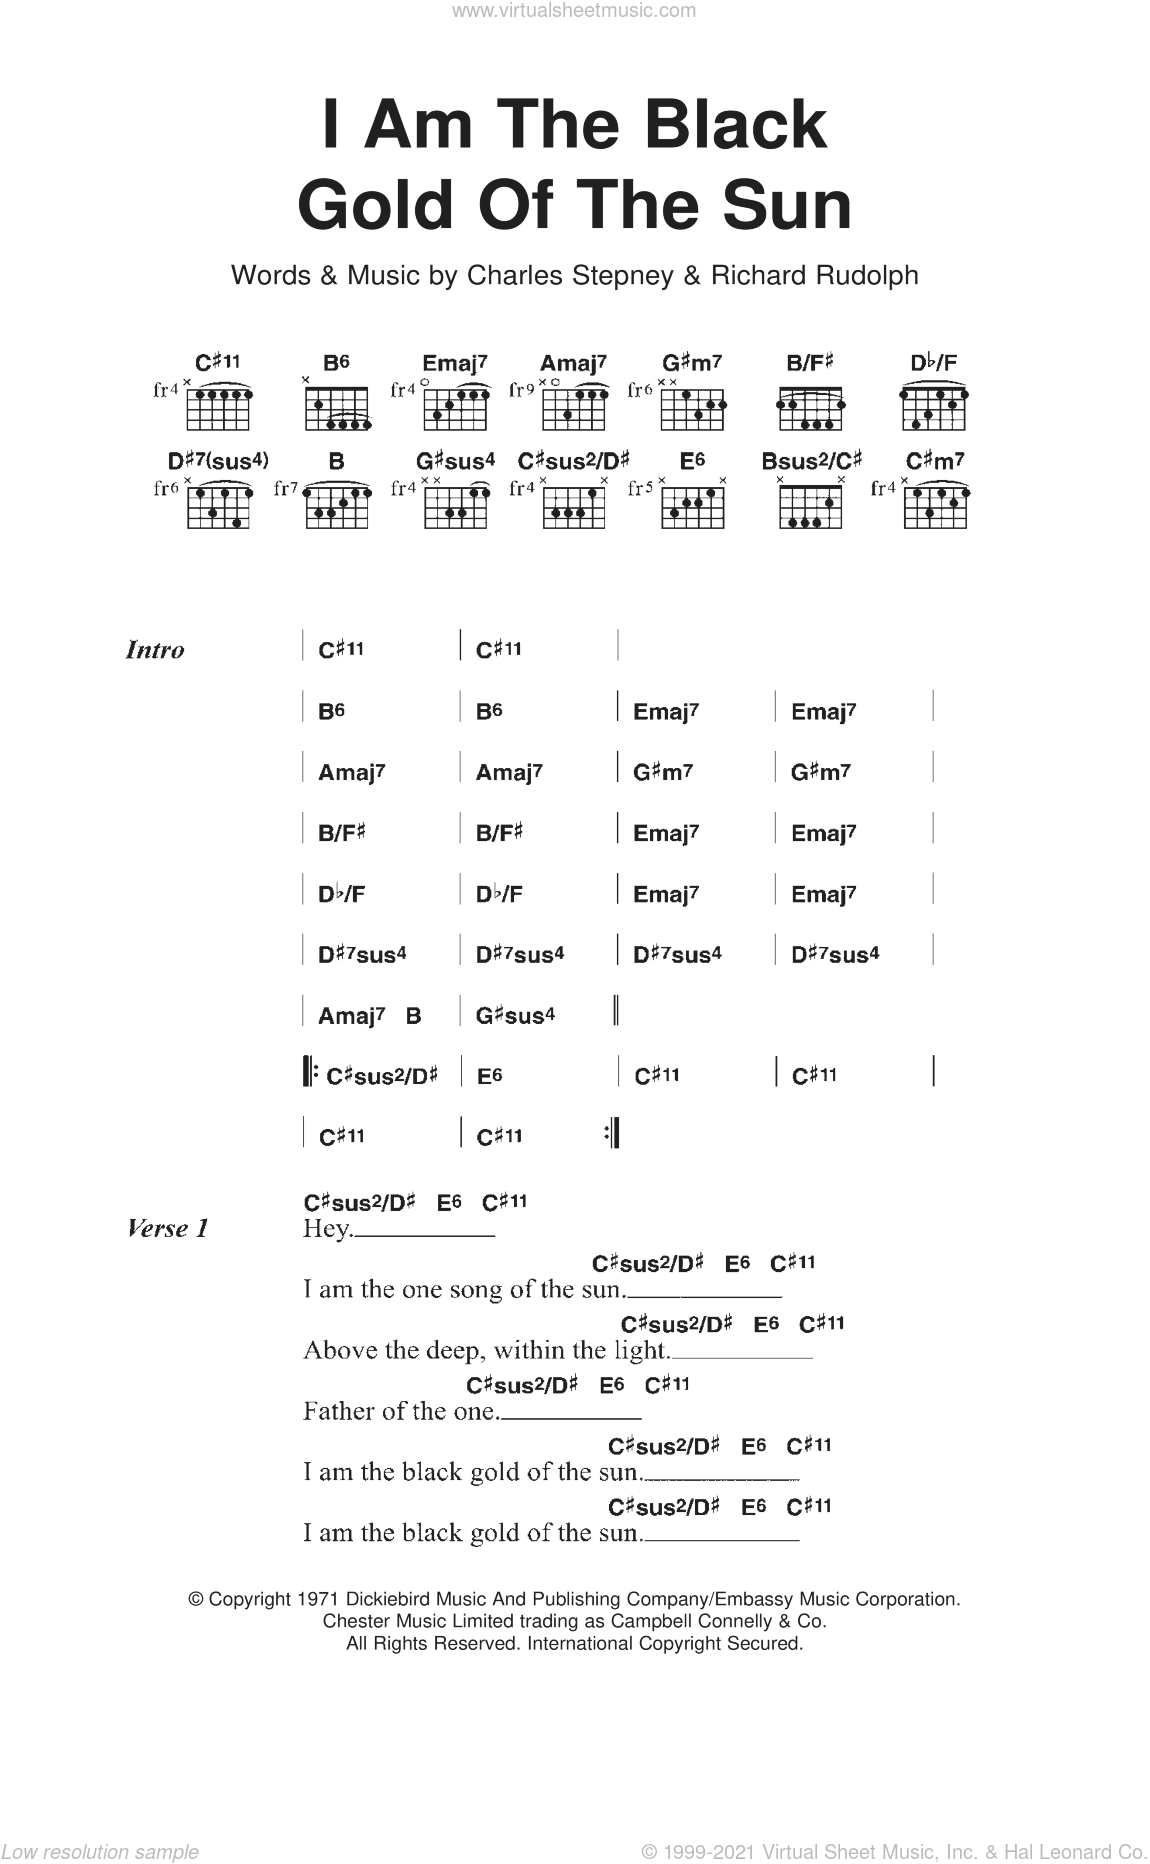 I Am The Black Gold Of The Sun sheet music for guitar (chords) by Rotary Connection, Charles Stepney and Richard Rudolph, intermediate skill level